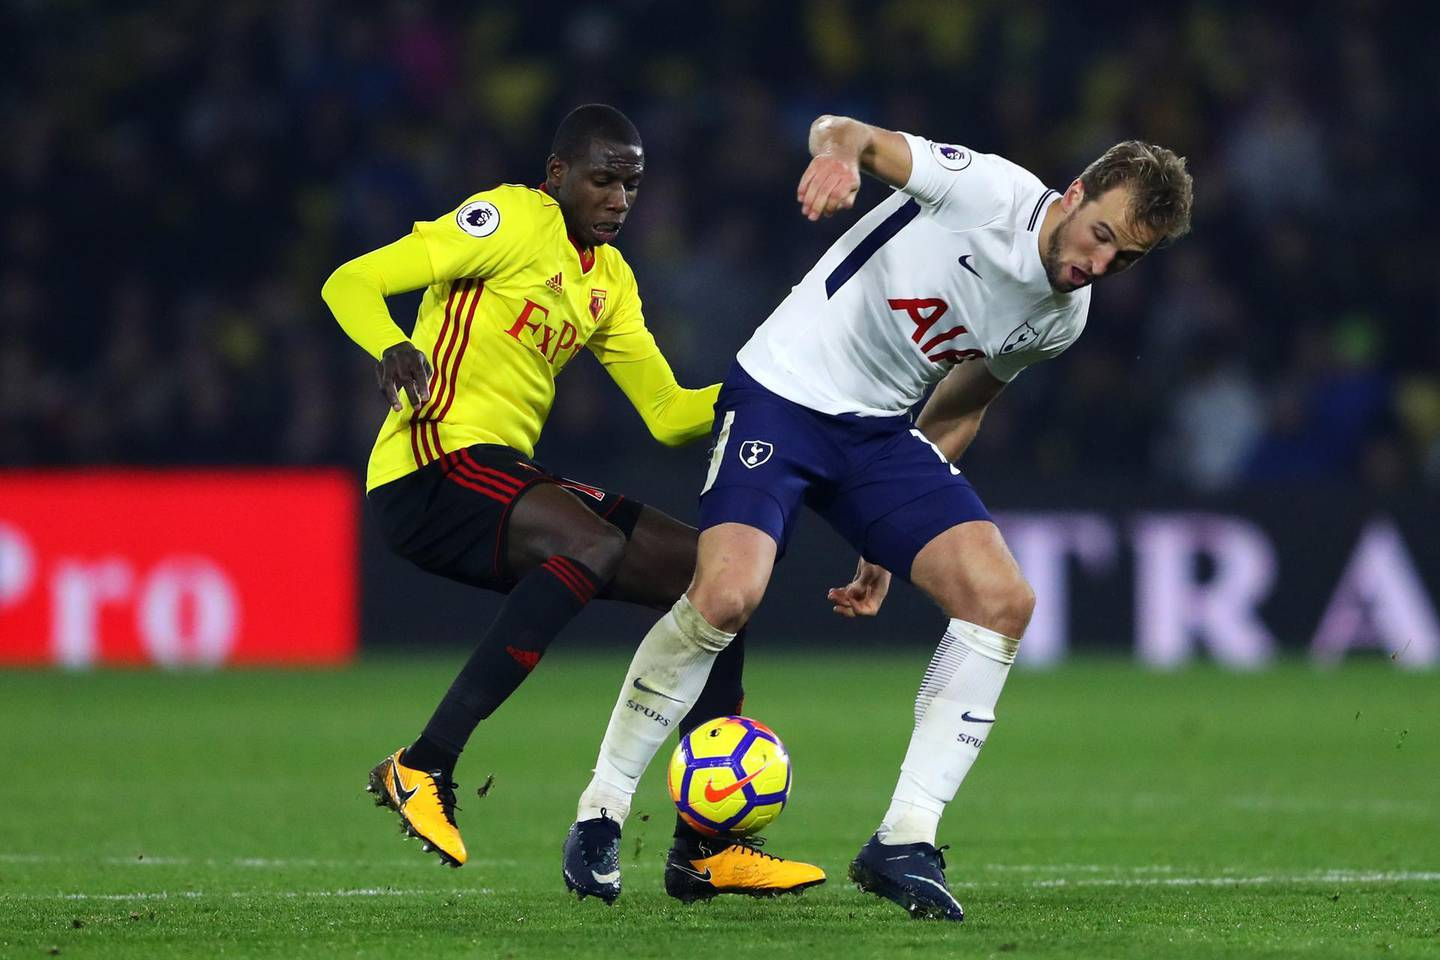 WATFORD, ENGLAND - DECEMBER 02: Harry Kane of Tottenham Hotspur is challenged by Abdoulaye Doucoure of Watford during the Premier League match between Watford and Tottenham Hotspur at Vicarage Road on December 2, 2017 in Watford, England.  (Photo by Warren Little/Getty Images)